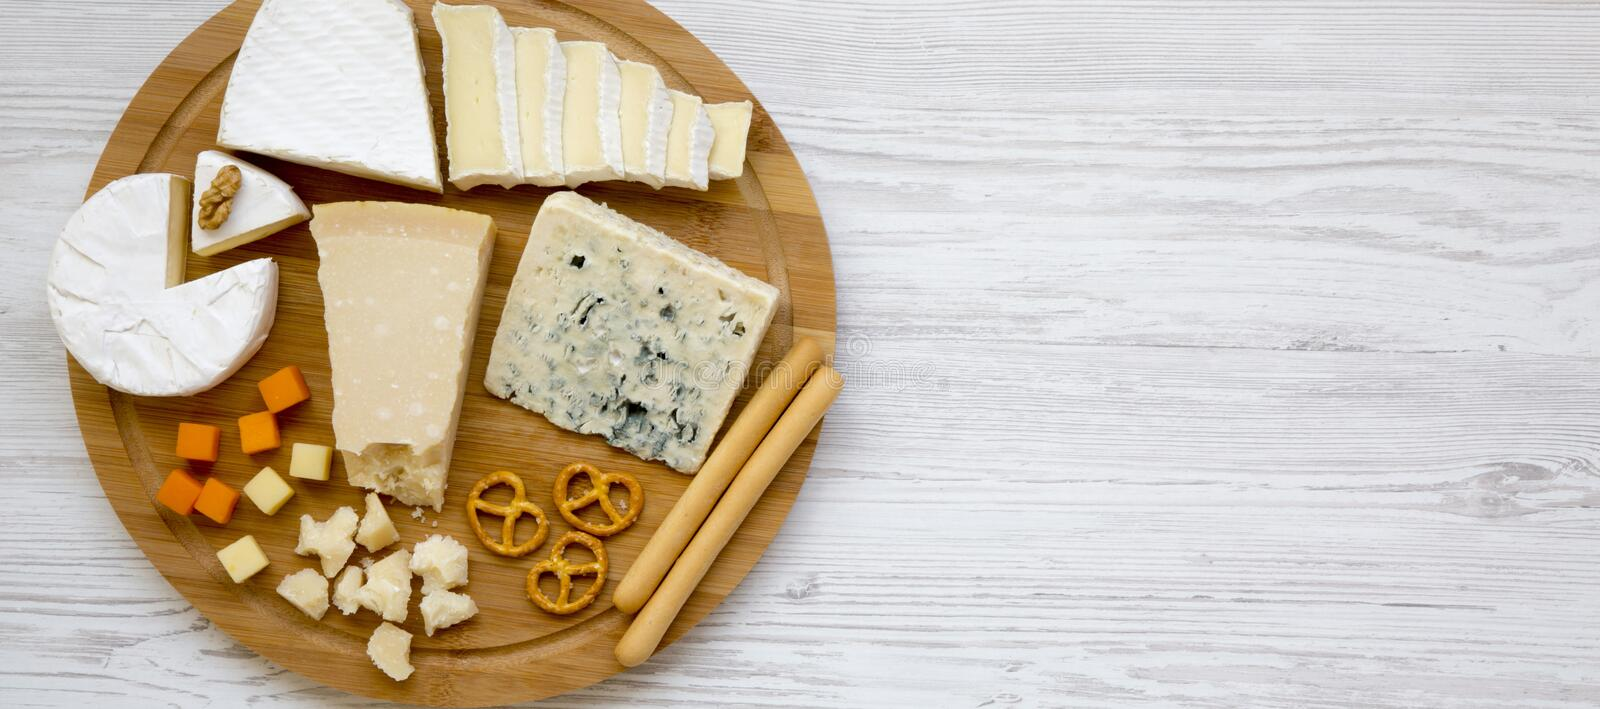 Tasting cheese with bread sticks, walnuts and pretzels on a bamboo board on a white wooden background, top view. Food for wine. Copy space. From above stock photography